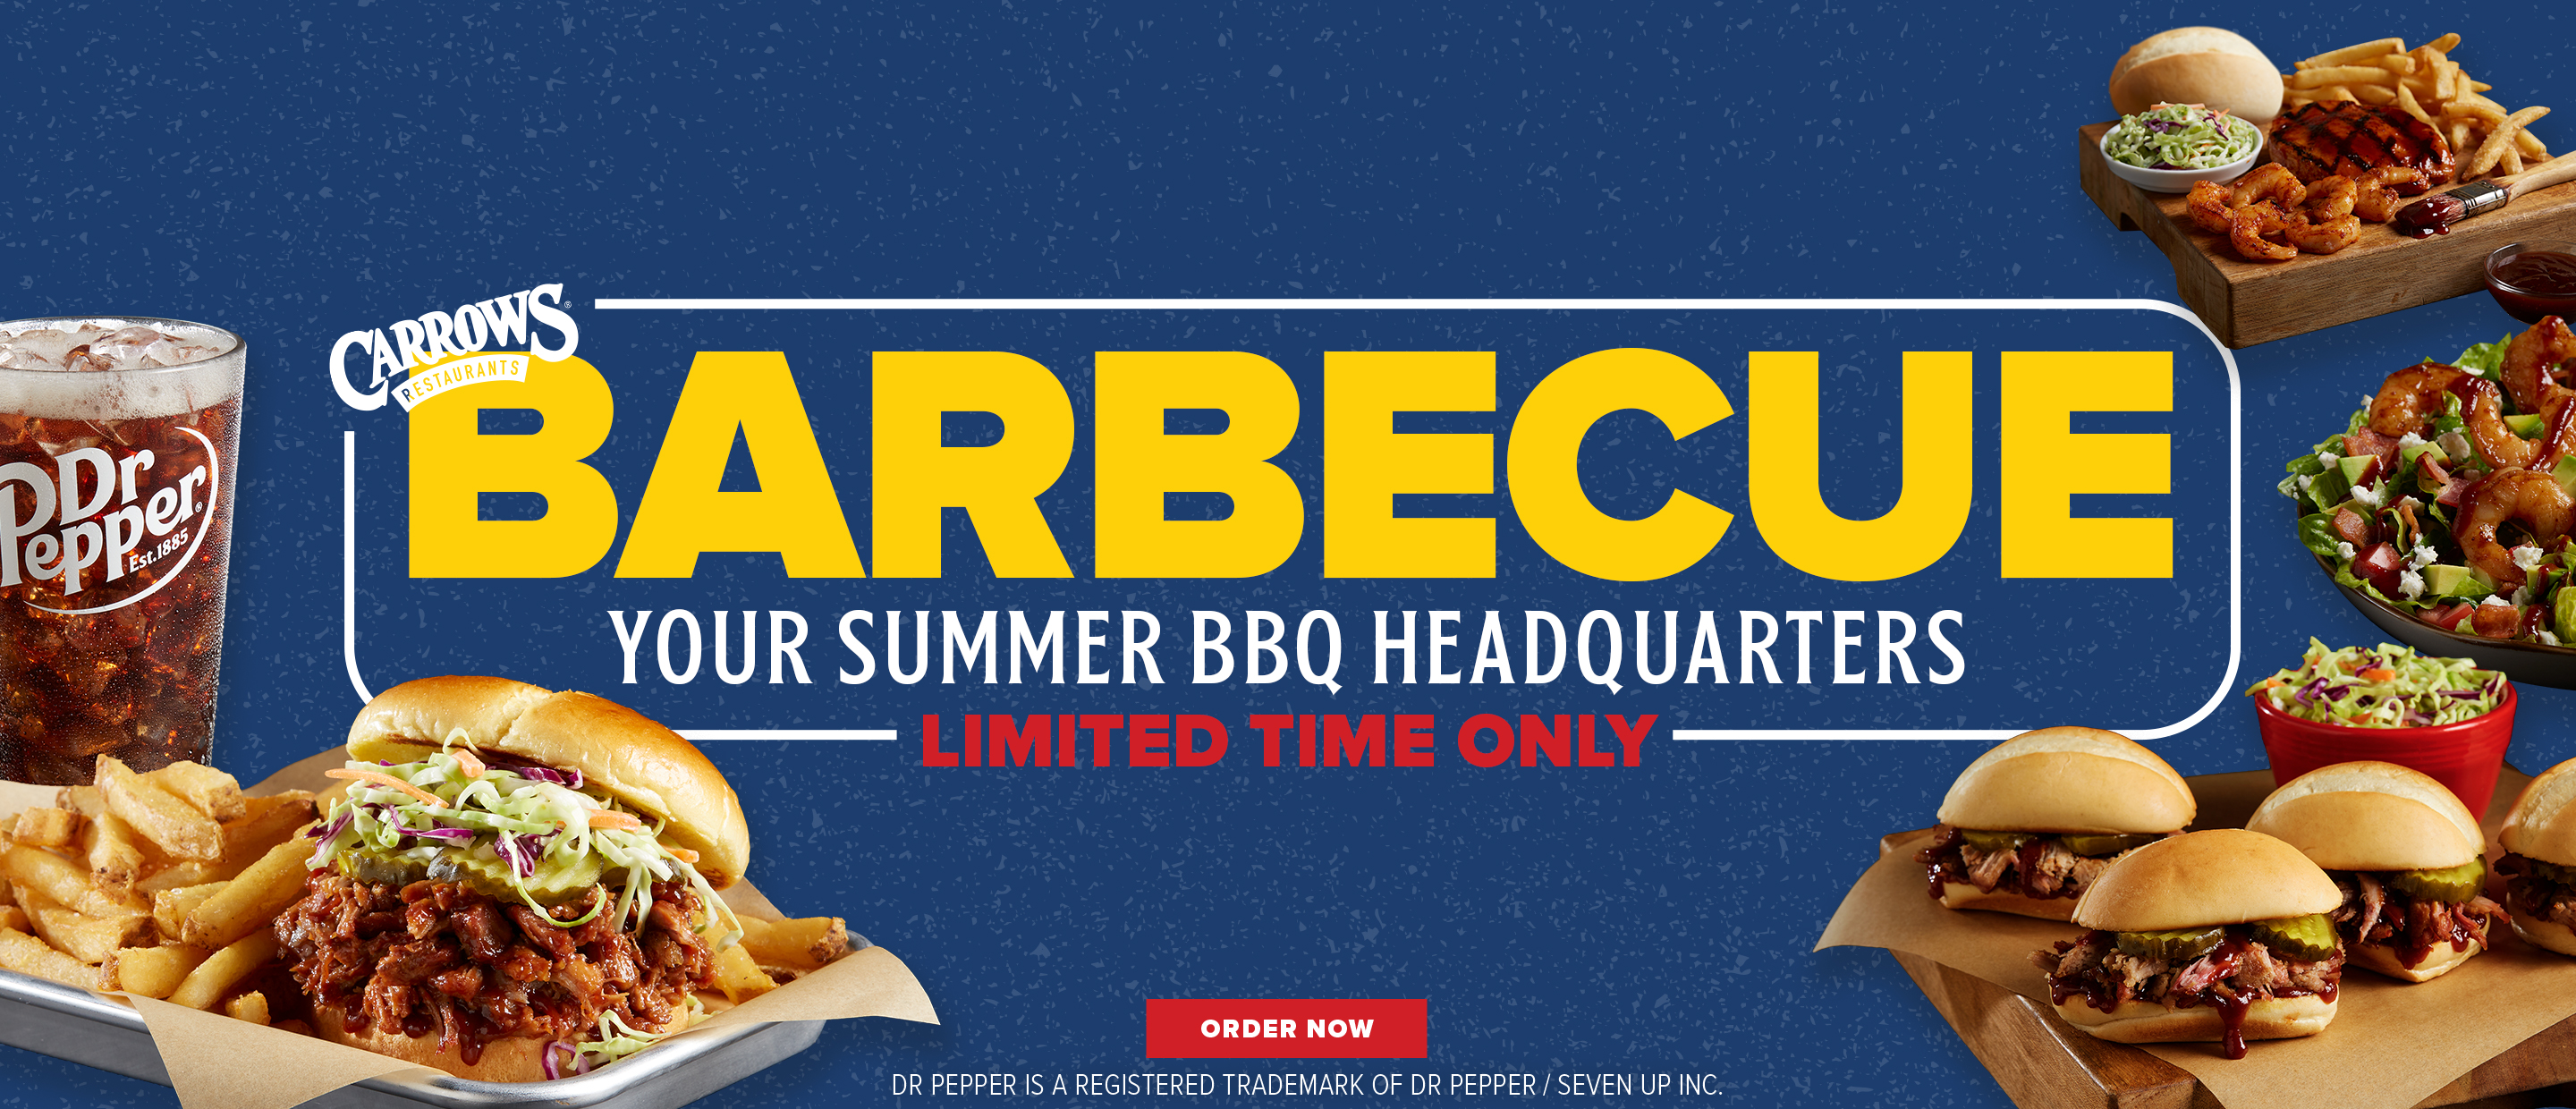 Carrows Barbecue. Your Summer BBQ Headquarters. Limited Time Only. Order Now.